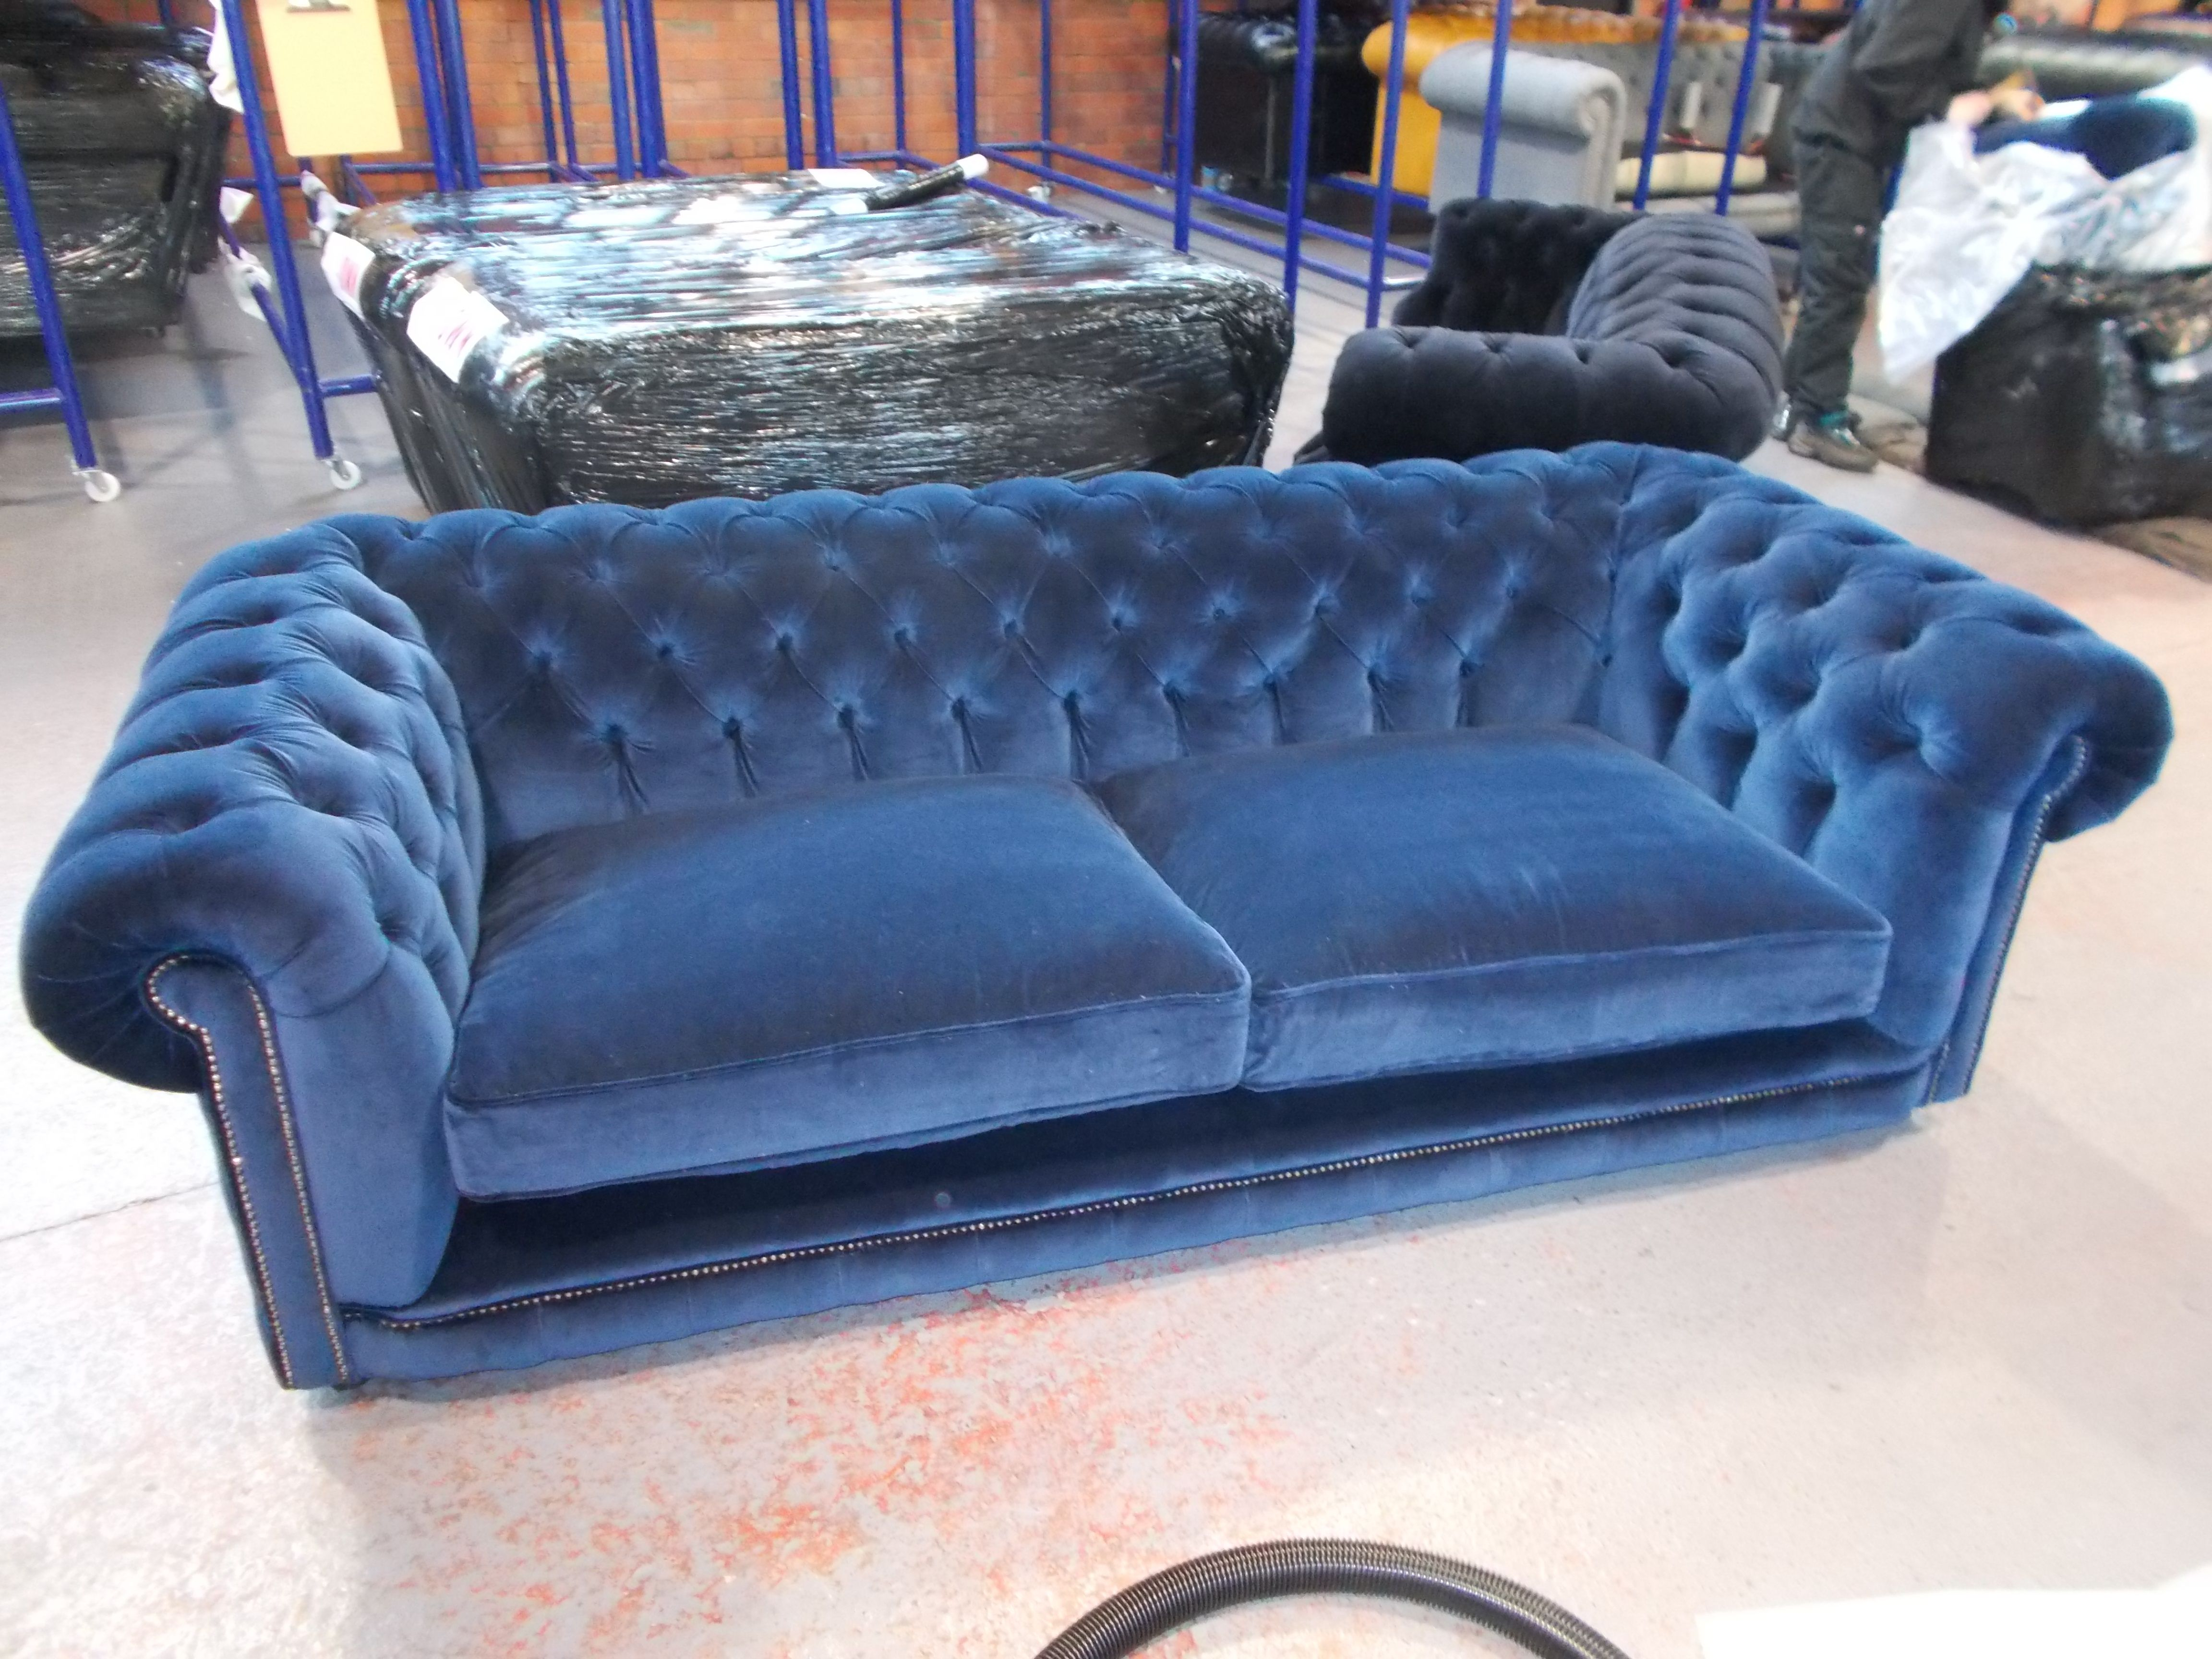 Hampton 3 Seater Chesterfield Sofa In Blue Velvet With 2 Large Cushions Leather Living Room Furniture Velvet Sofa Living Room Tufted Leather Sofa